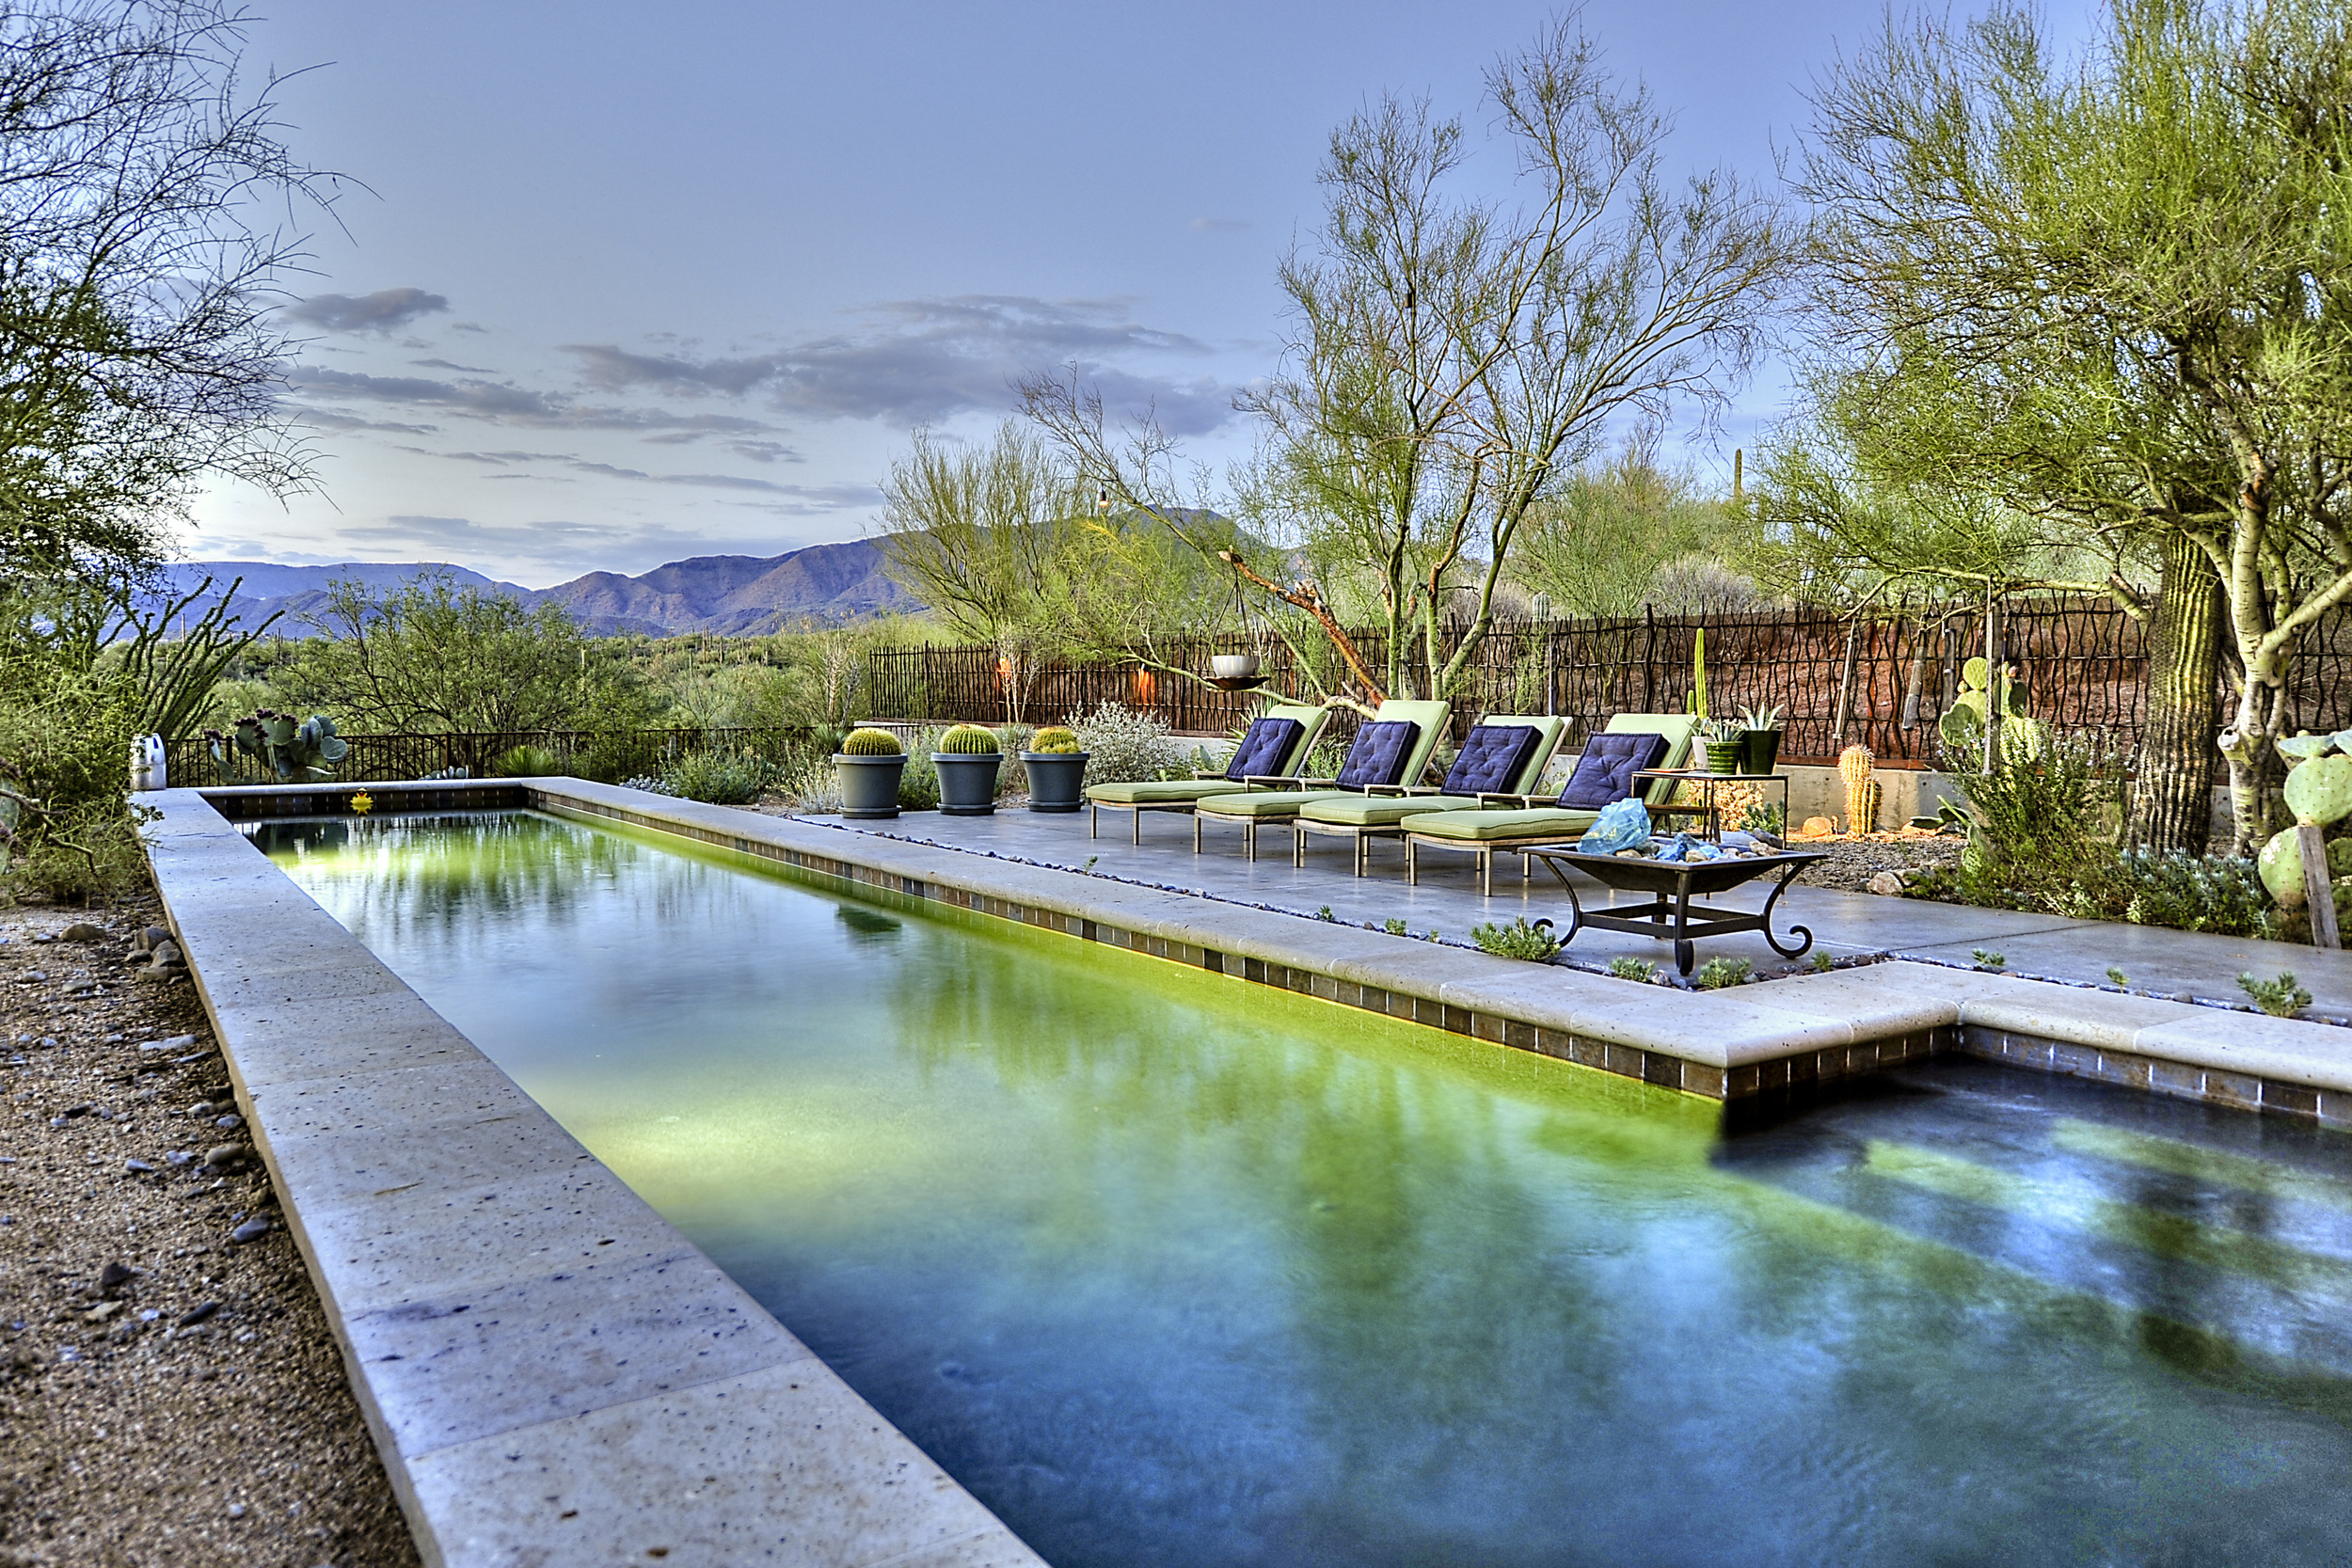 Pool-Patio-Mtn View.jpg